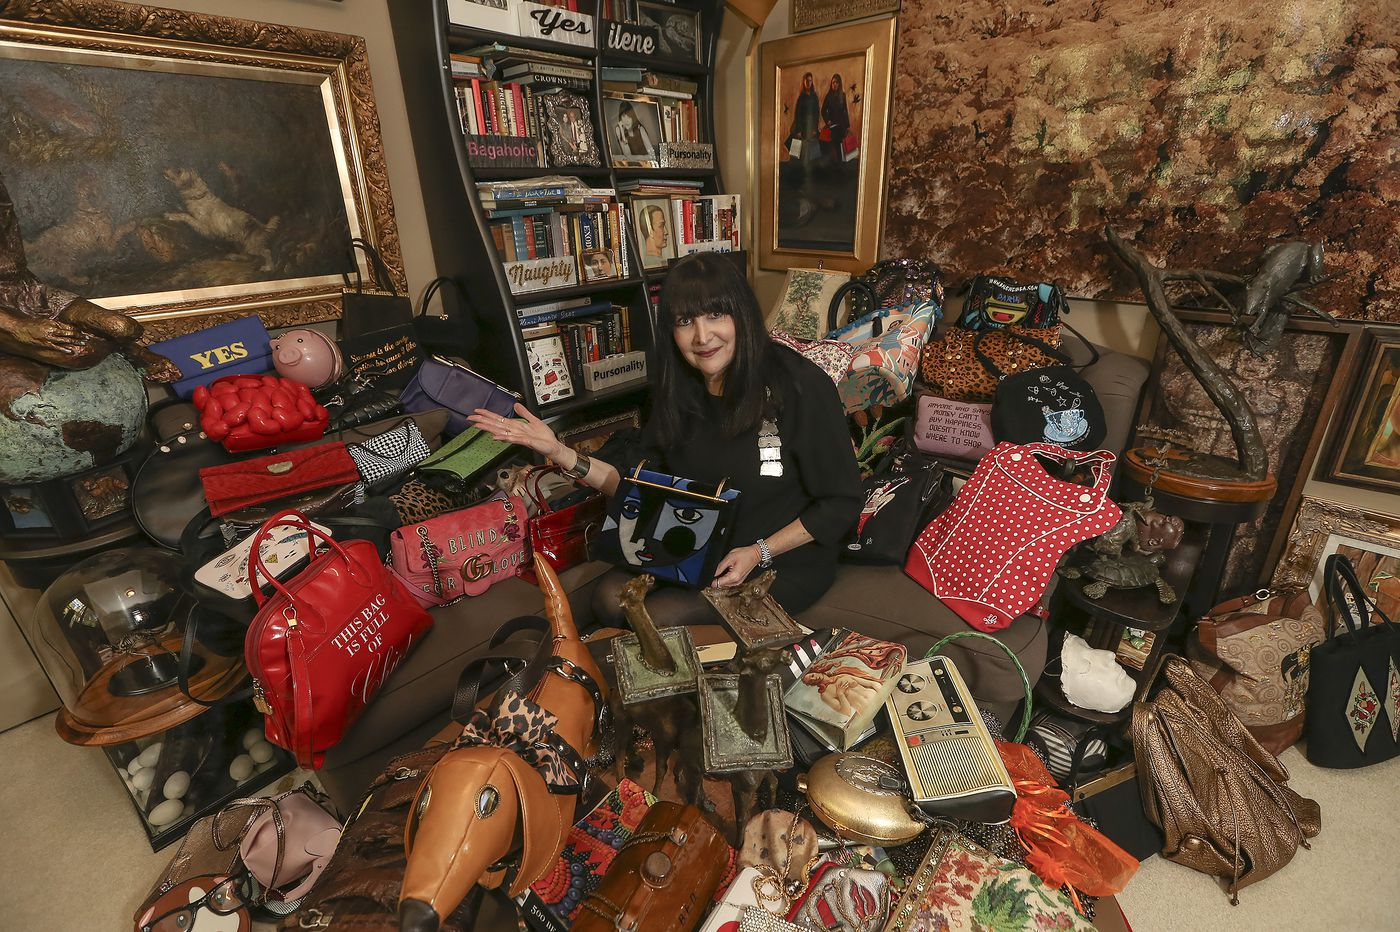 This Pa. woman owns 3,000 handbags, and she keeps them in an army bunker | Elizabeth Wellington